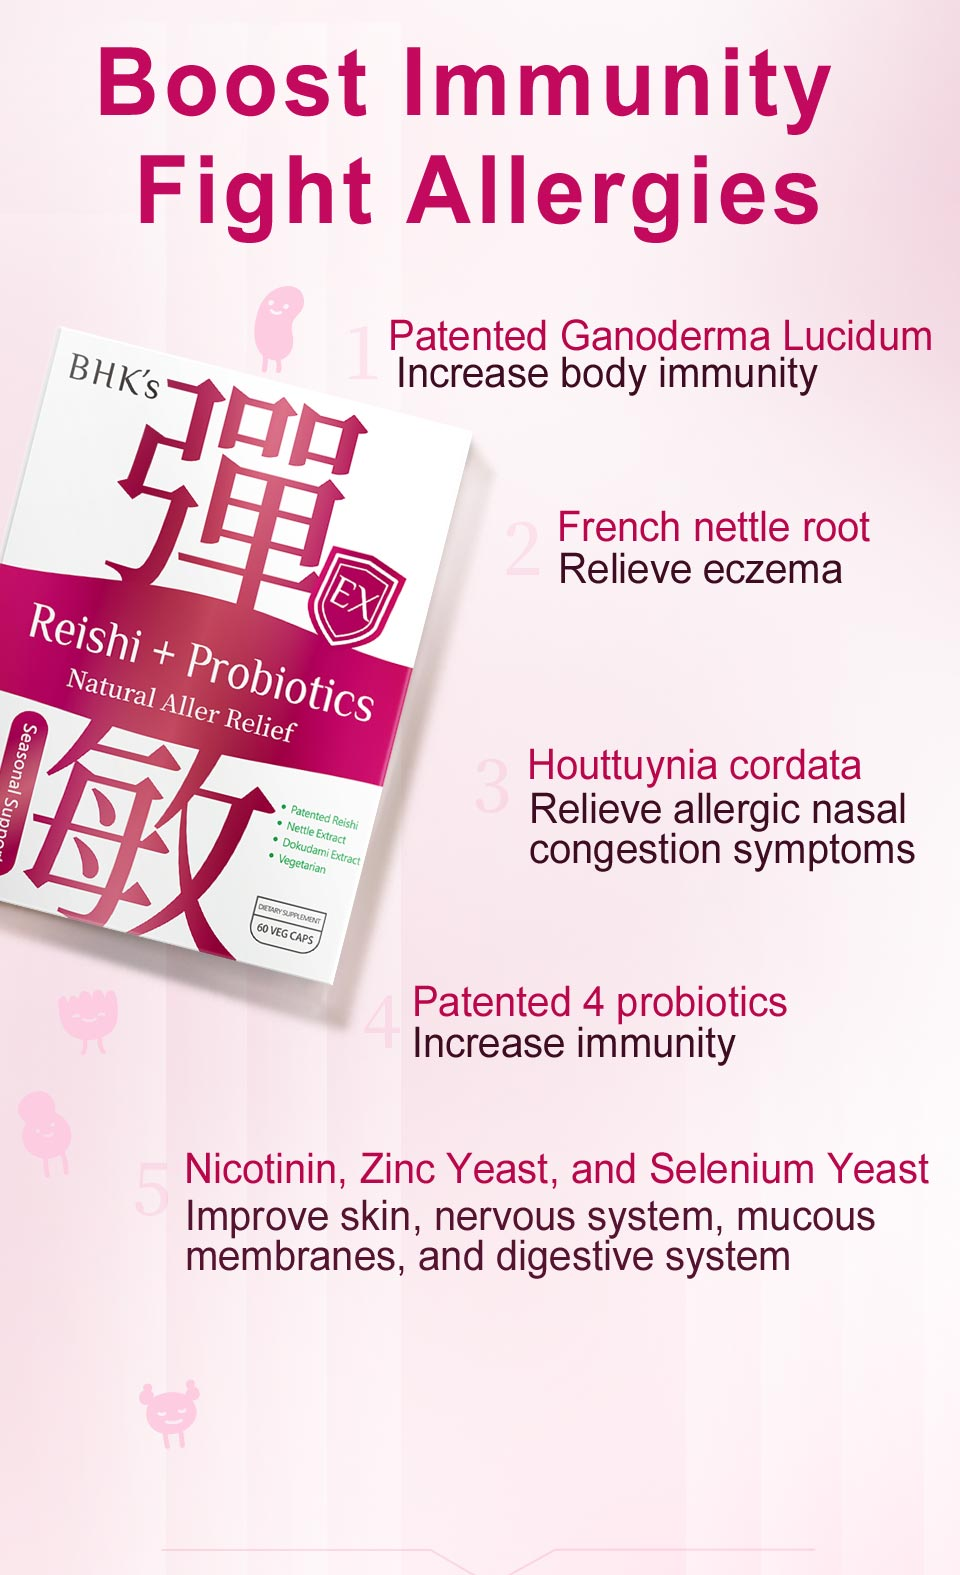 BHKs Reishi+Probiotics Capsules contains ganoderma lucidum that has more than 20% of polysaccharide, four types of probiotics, and nettle root extract.